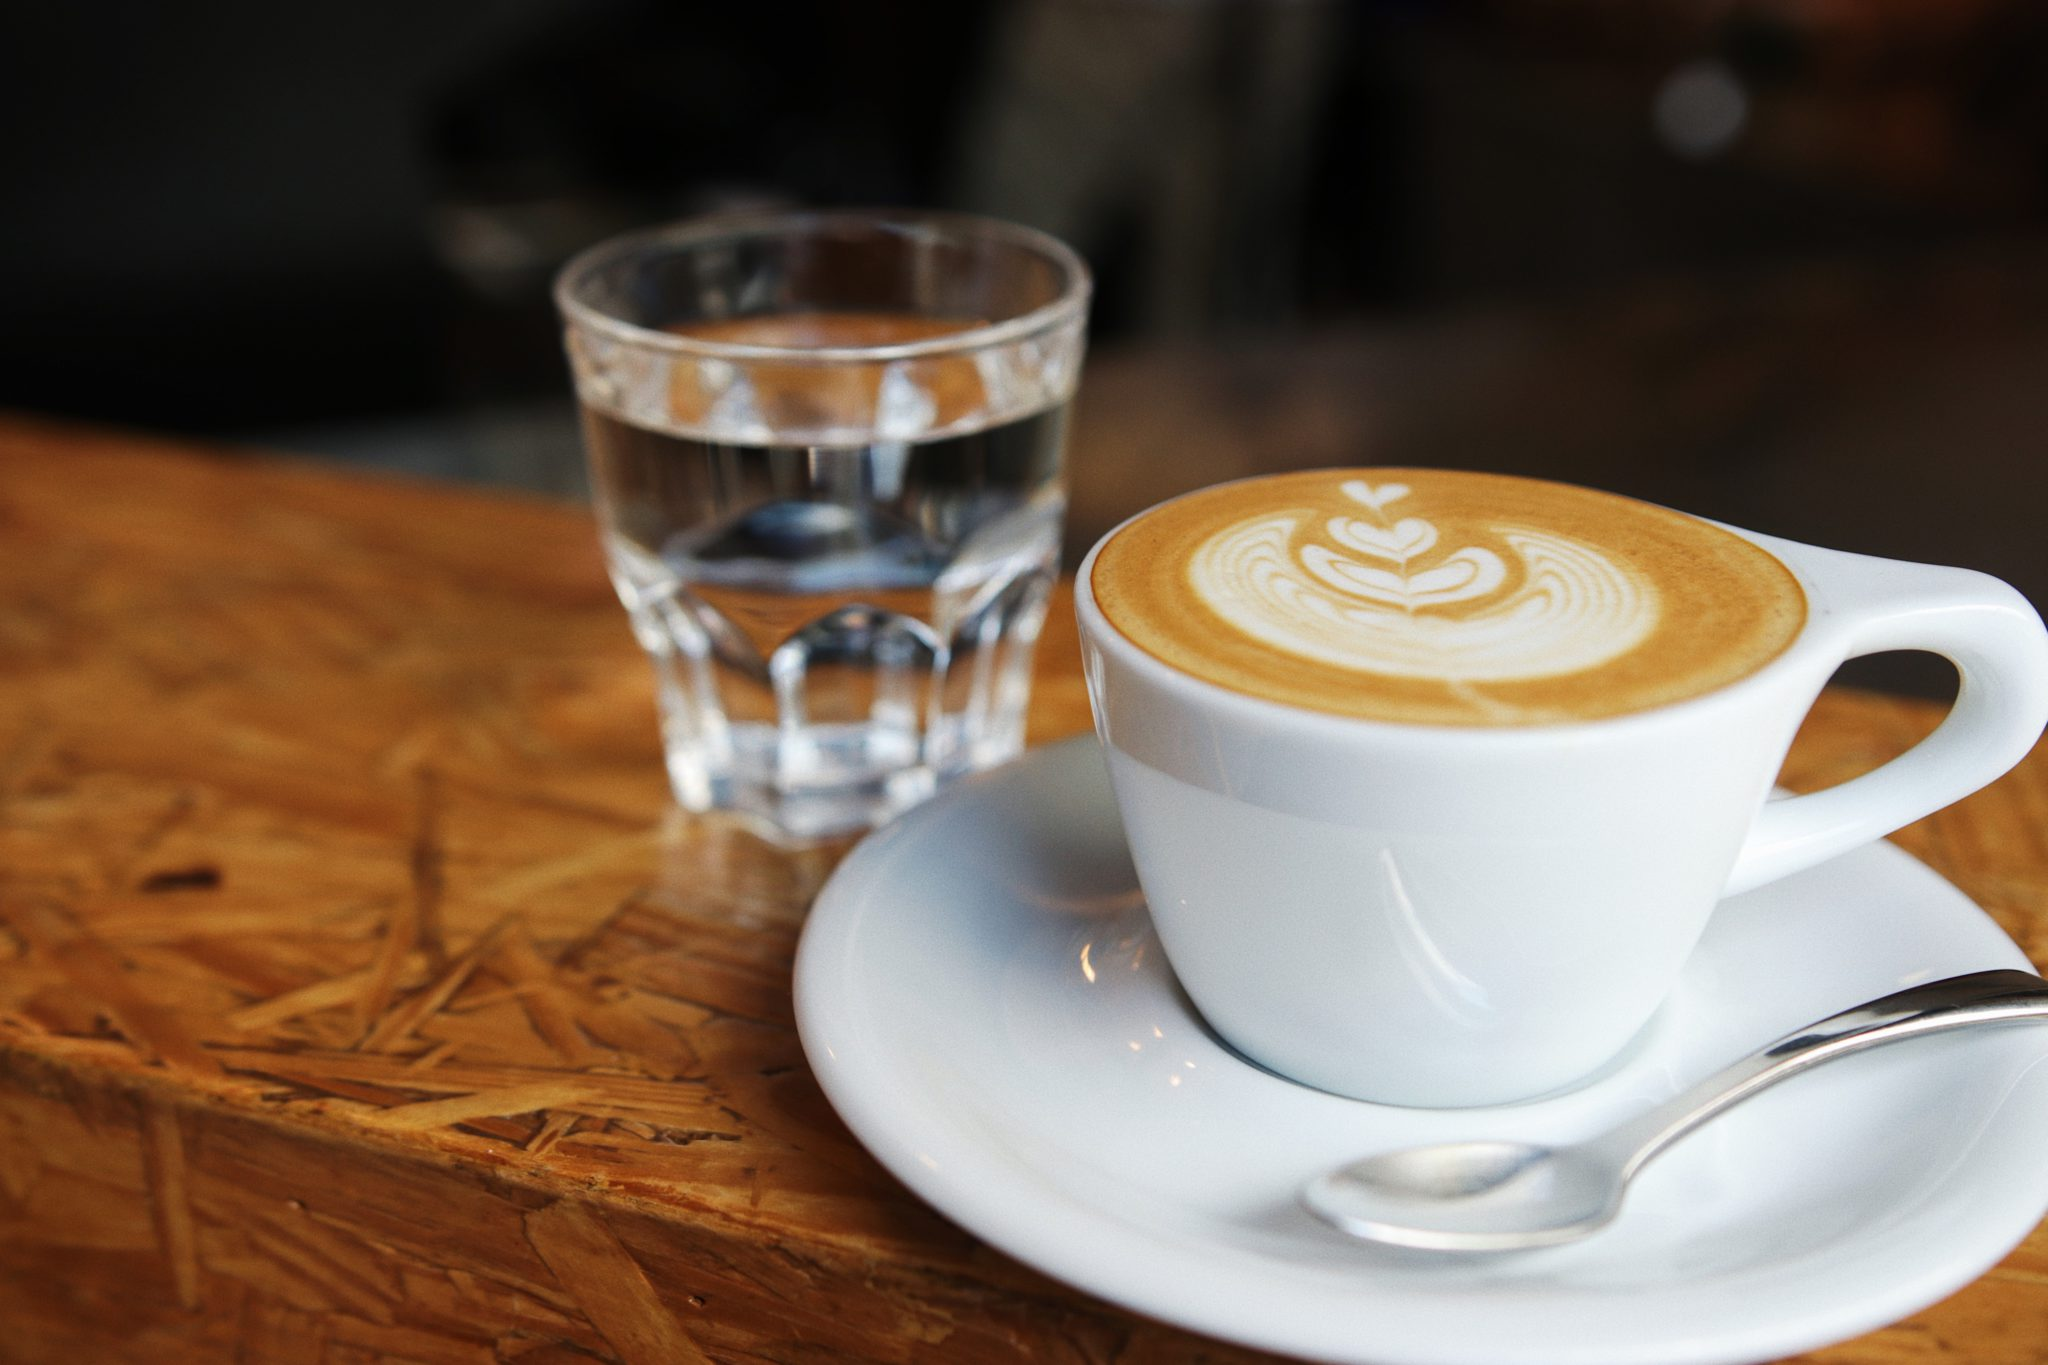 Take a coffee break to help prevent work from home burnout